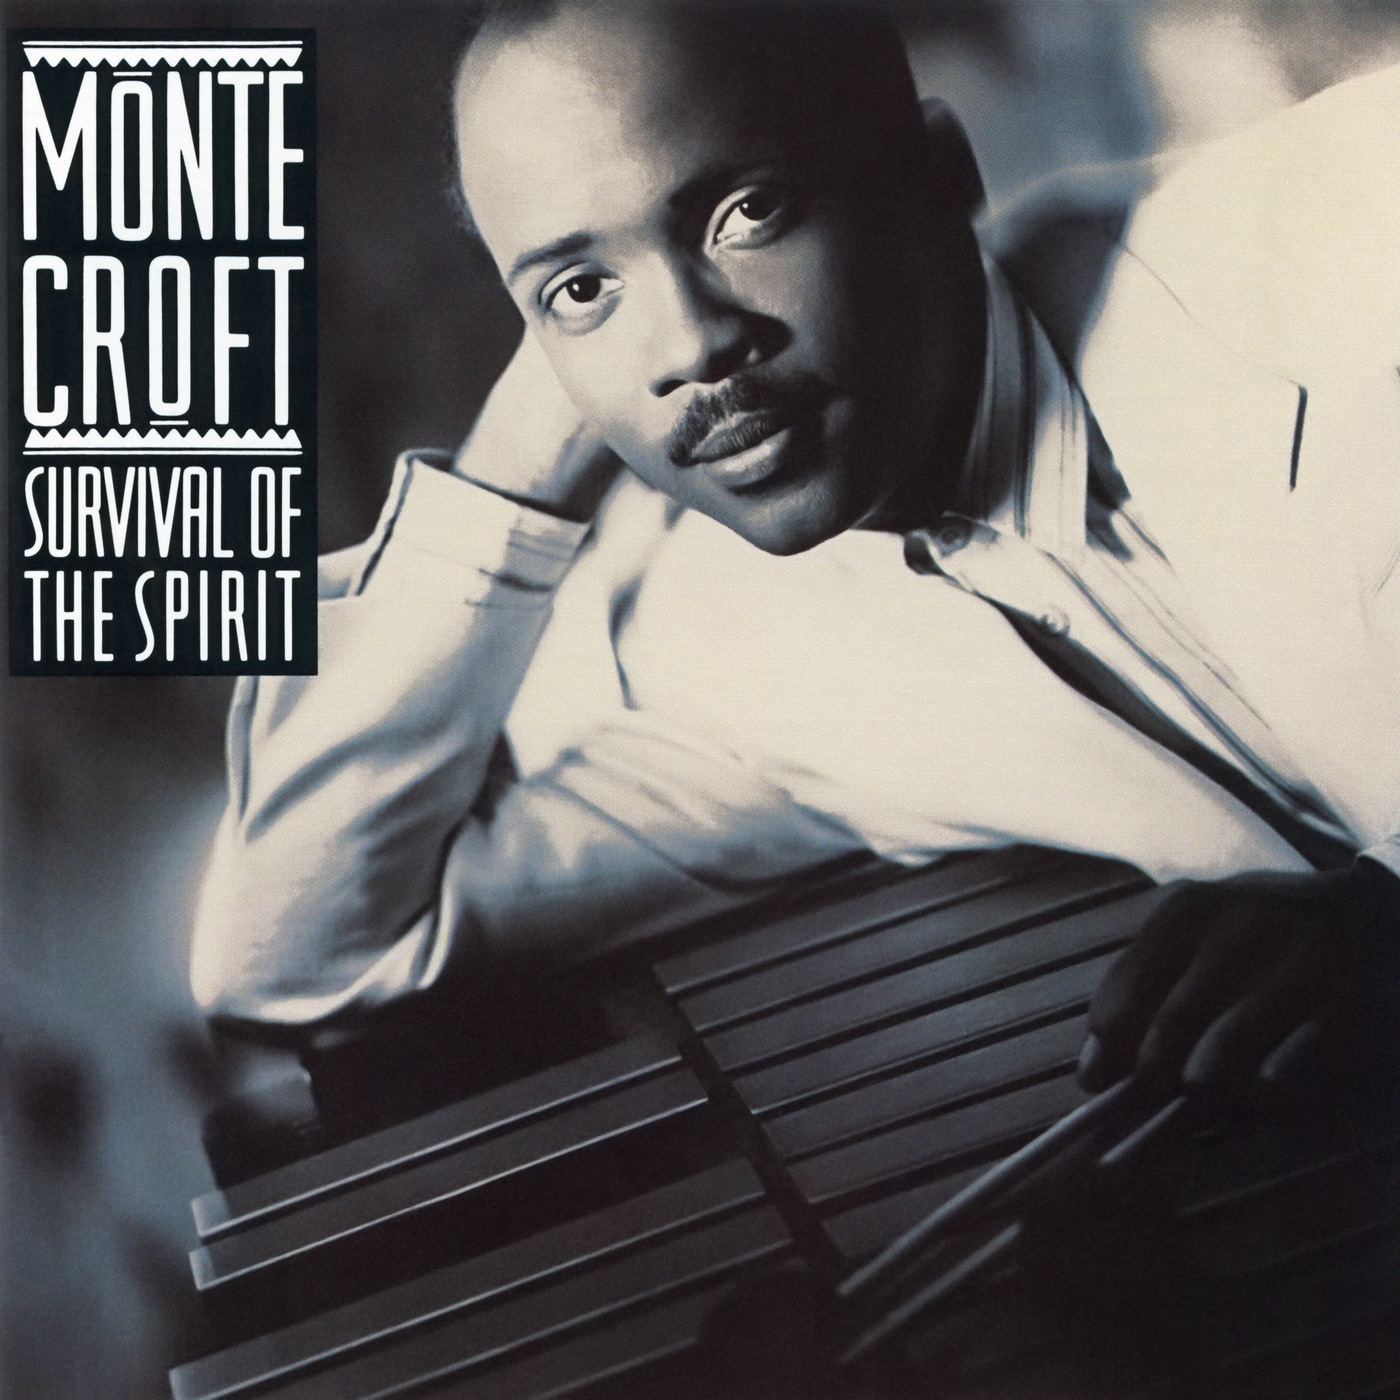 Survival of the Spirit - Monte Croft